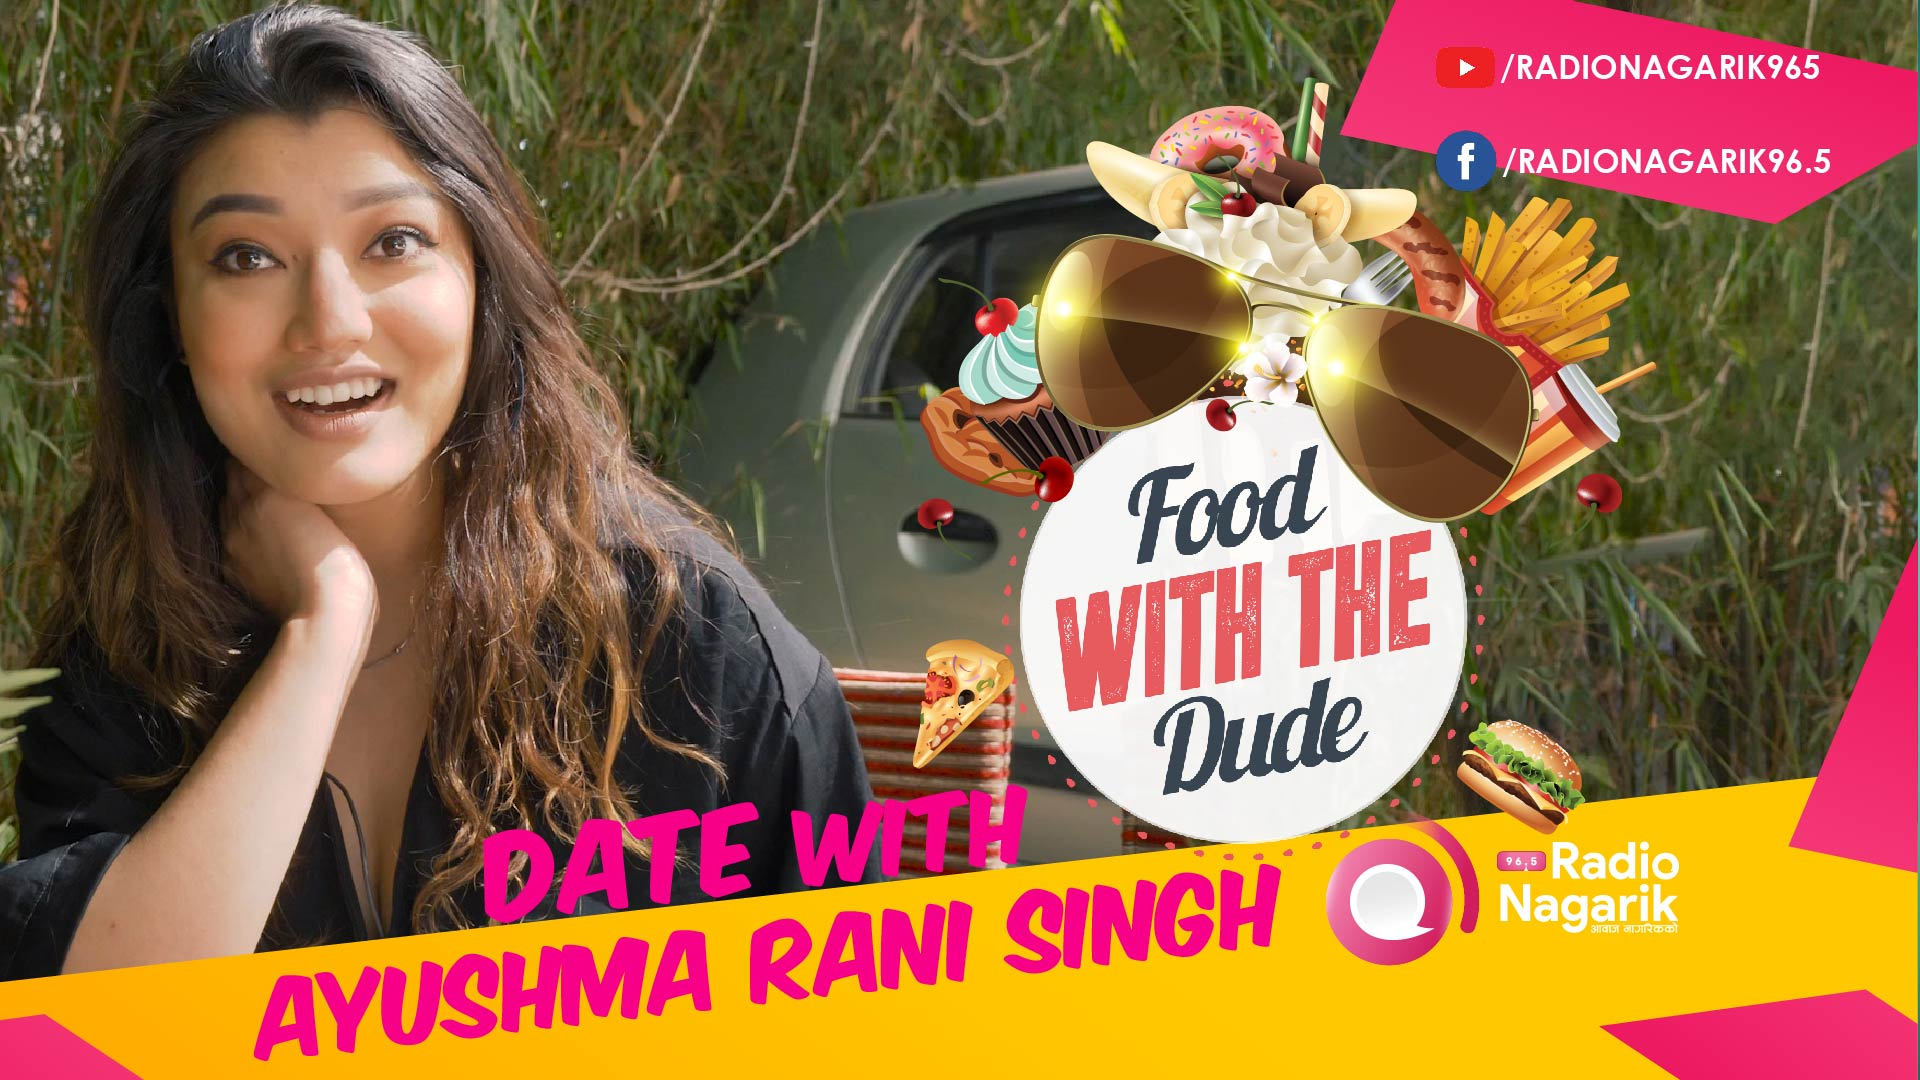 Date with AYUSHMA RANI SINGH | Looking up to Shrinkhala Khatiwada - DATE 7 | #FoodWithTheDude